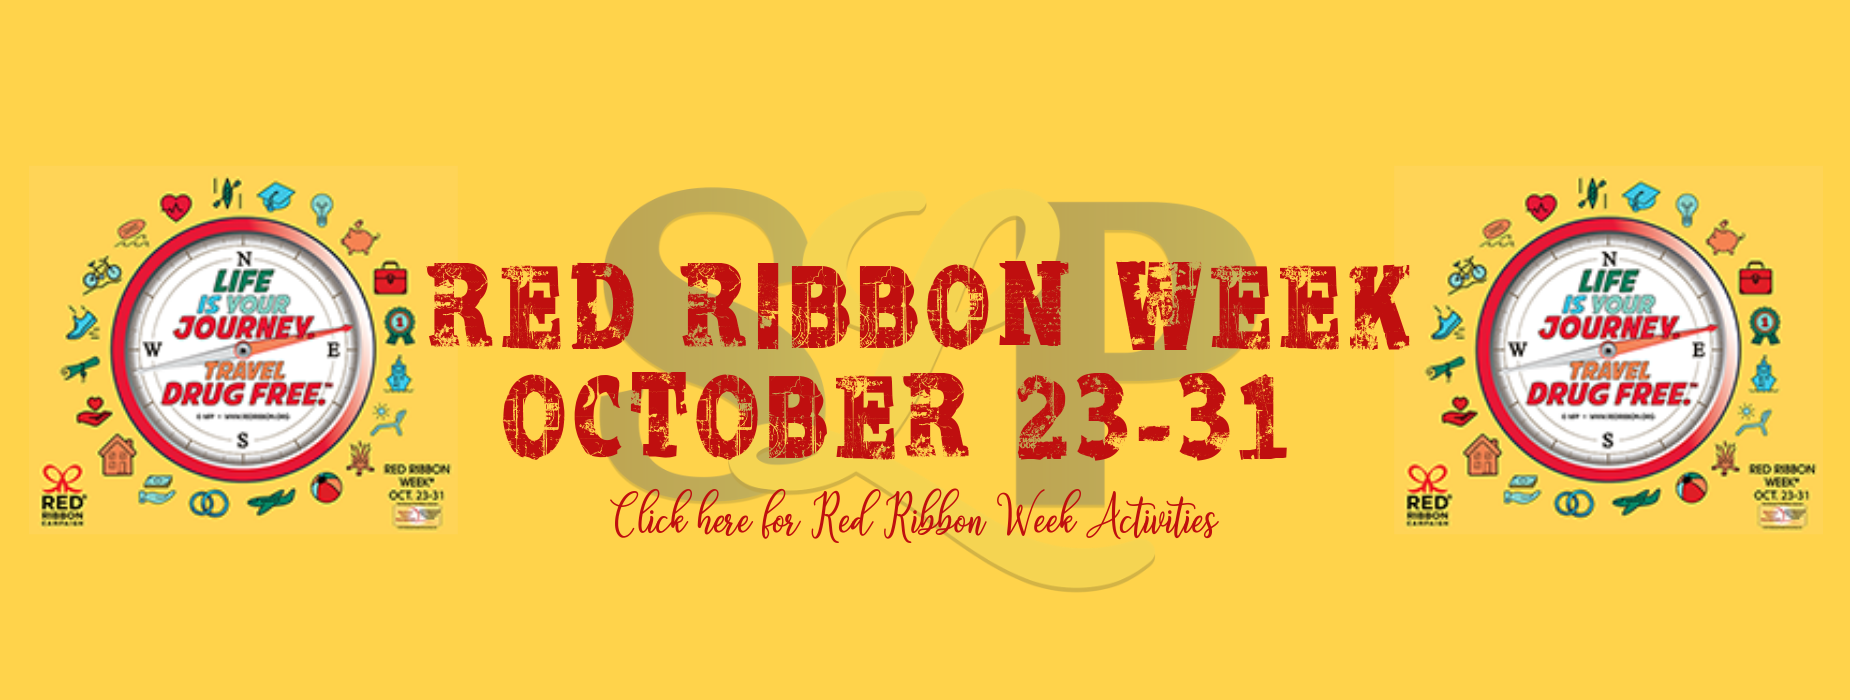 Red ribbon week oct 23-31  linked out to http://redribbon.org/